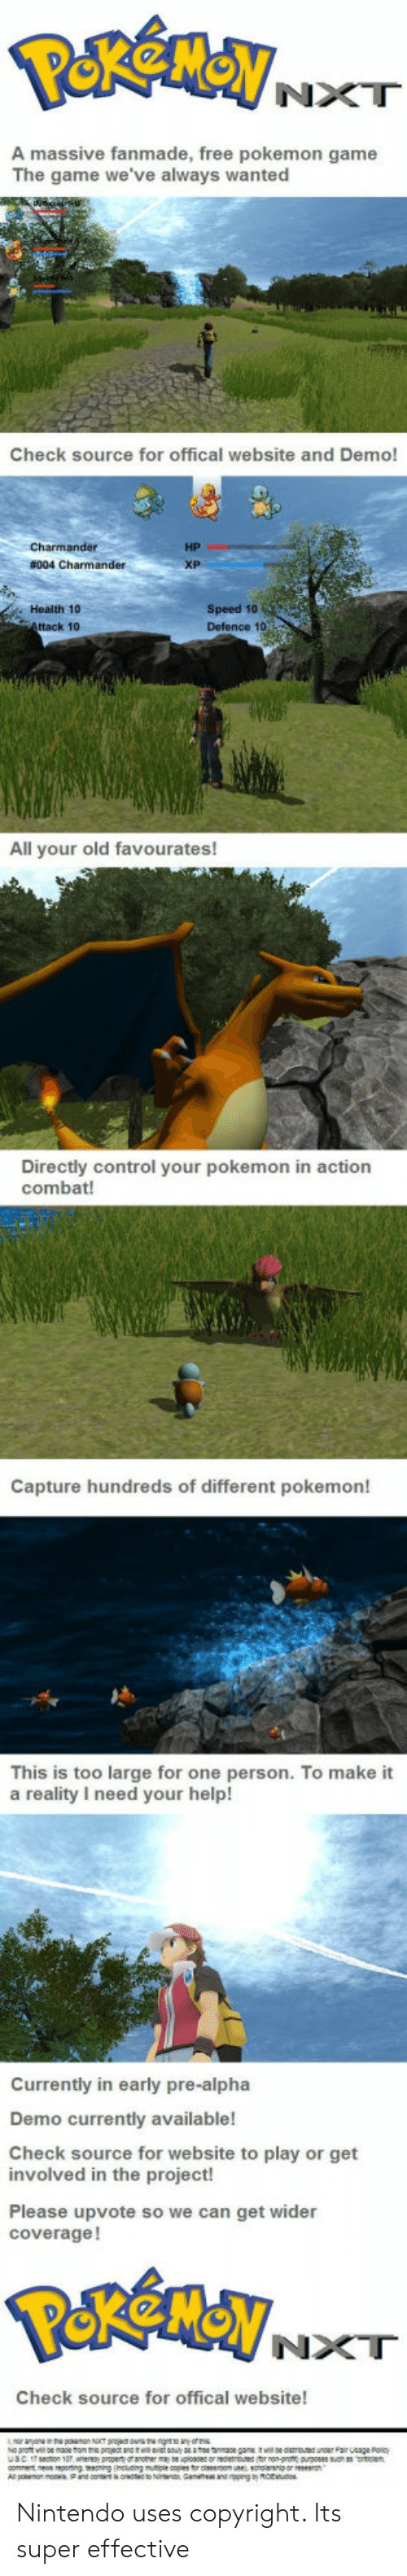 Nintendo, Pokemon, and The Game: NXT  A massive fanmade, free pokemon game  The game we've always wanted  Check source for offical website and Demo!  HP  Health 10  ttack 10  Speed 10  Defence 1o  All your old favourates!  Directly control your pokemon in action  combat!  Capture hundreds of different pokemon!  This is too large for one person. To make it  a reality I need your help!  Currently in early pre-alpha  Demo currently available!  Check source for website to play or get  involved in the project!  Please upvote so we can get wider  coverage!  NXT  Check source for offical website! Nintendo uses copyright. Its super effective